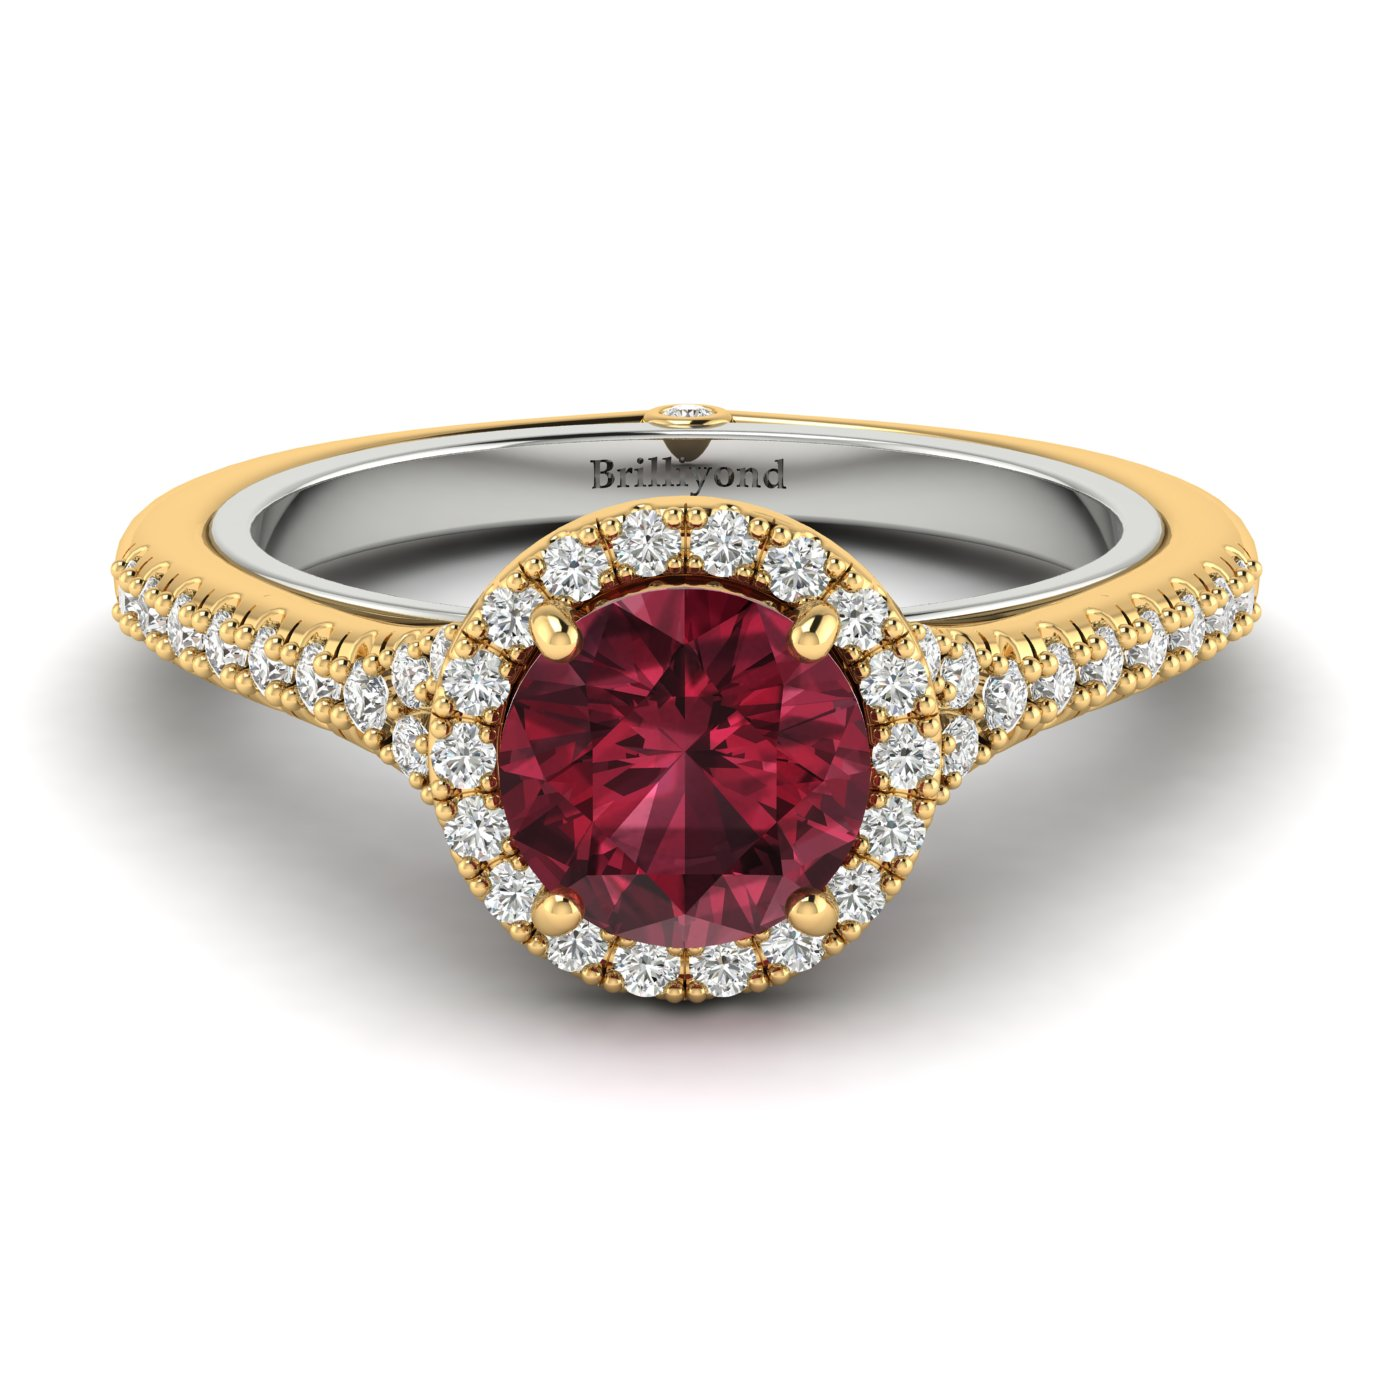 Red Garnet and CZ on a stylish Two Tone 18k Gold Band